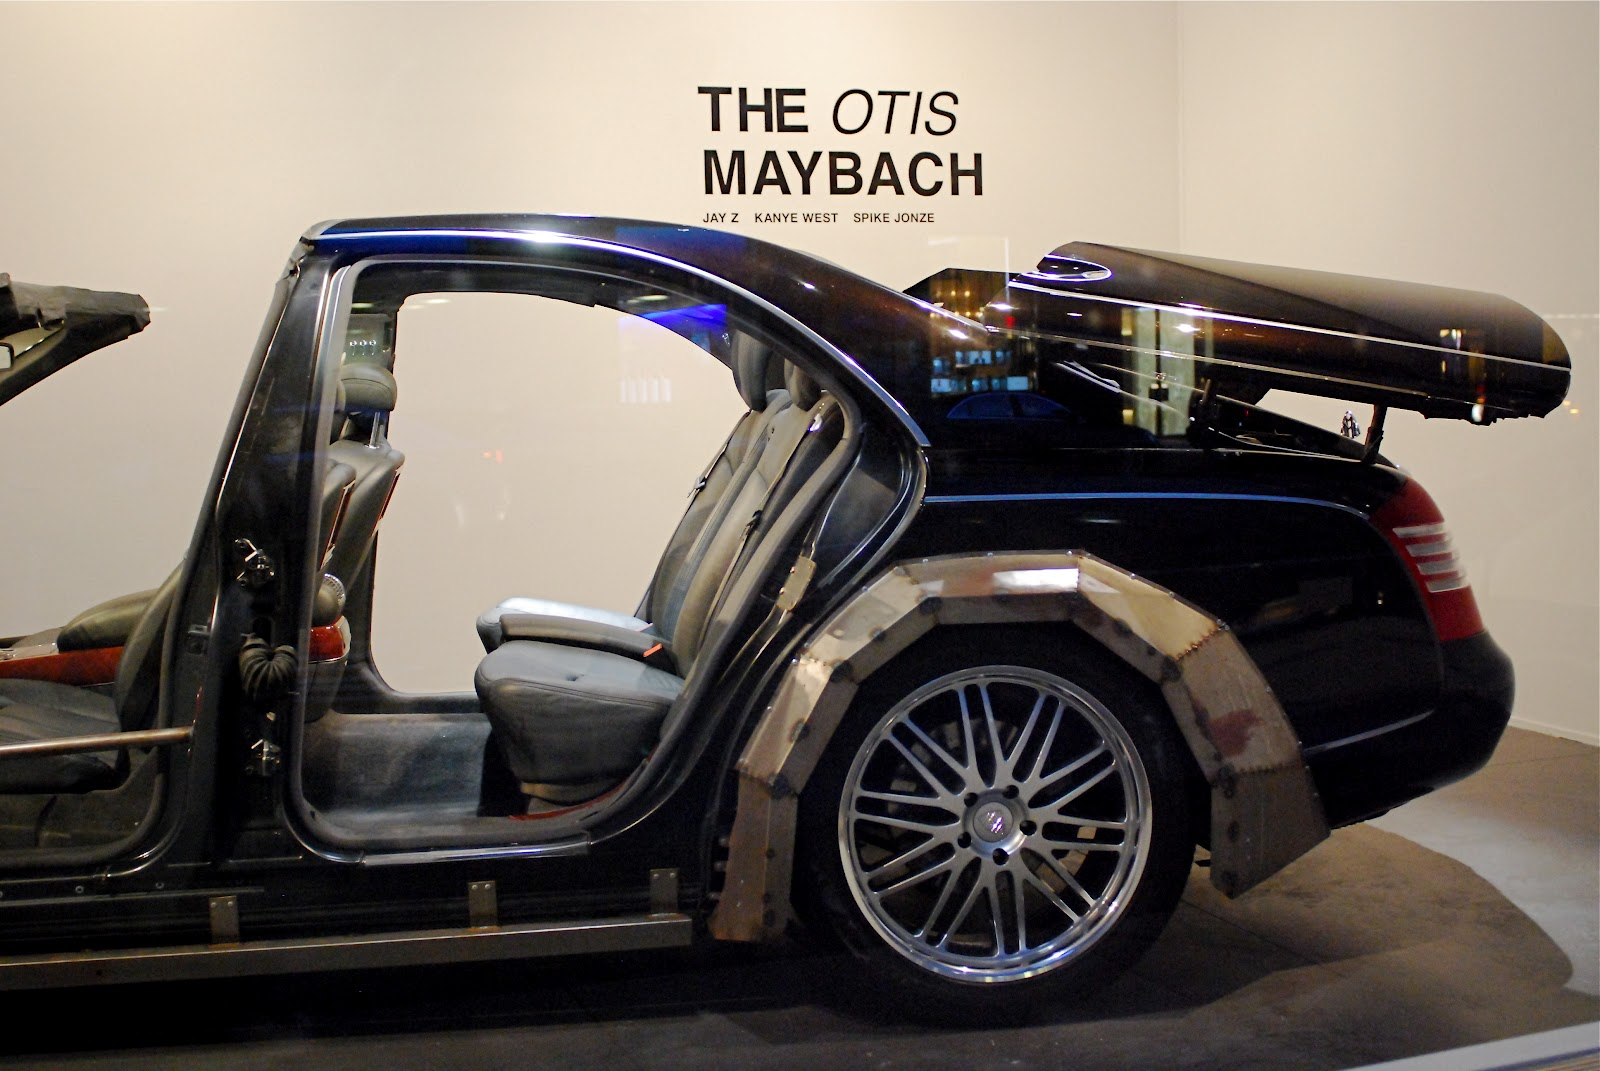 "nyc ♥ nyc: 2004 otis maybach 57 from jay z and kanye west ""otis"